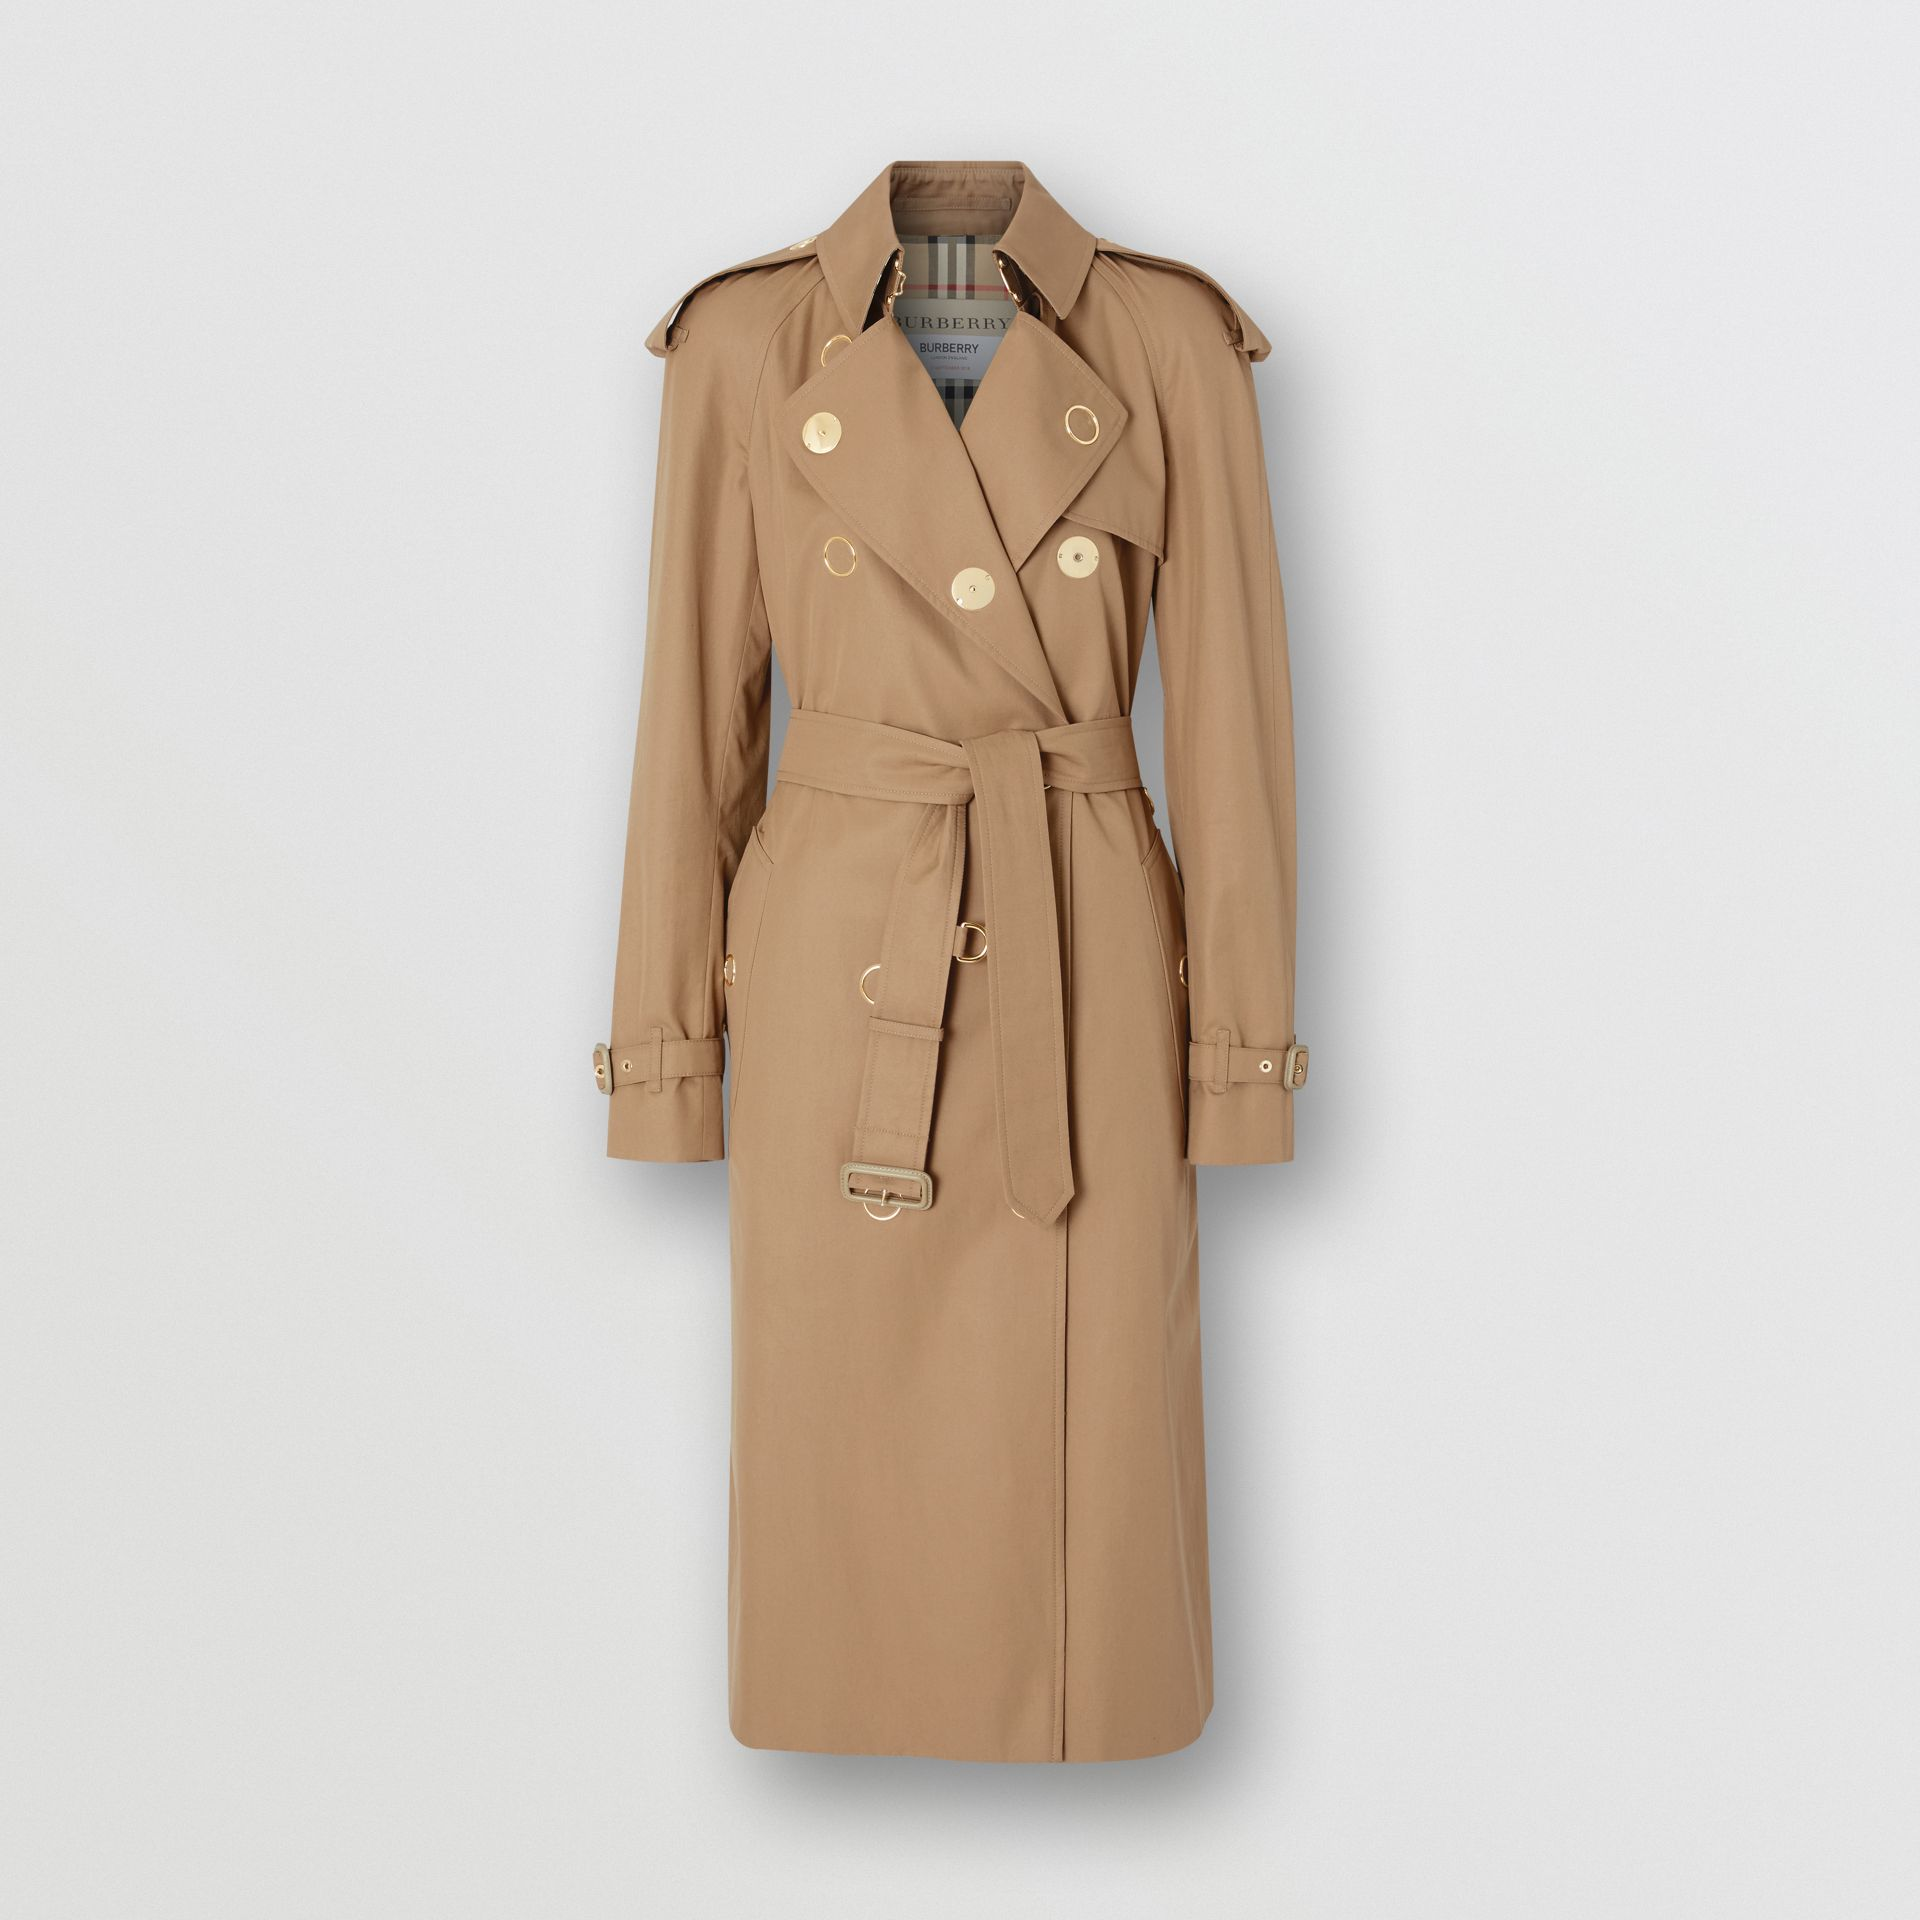 Press-stud Detail Cotton Gabardine Trench Coat in Driftwood - Women | Burberry Hong Kong - gallery image 3